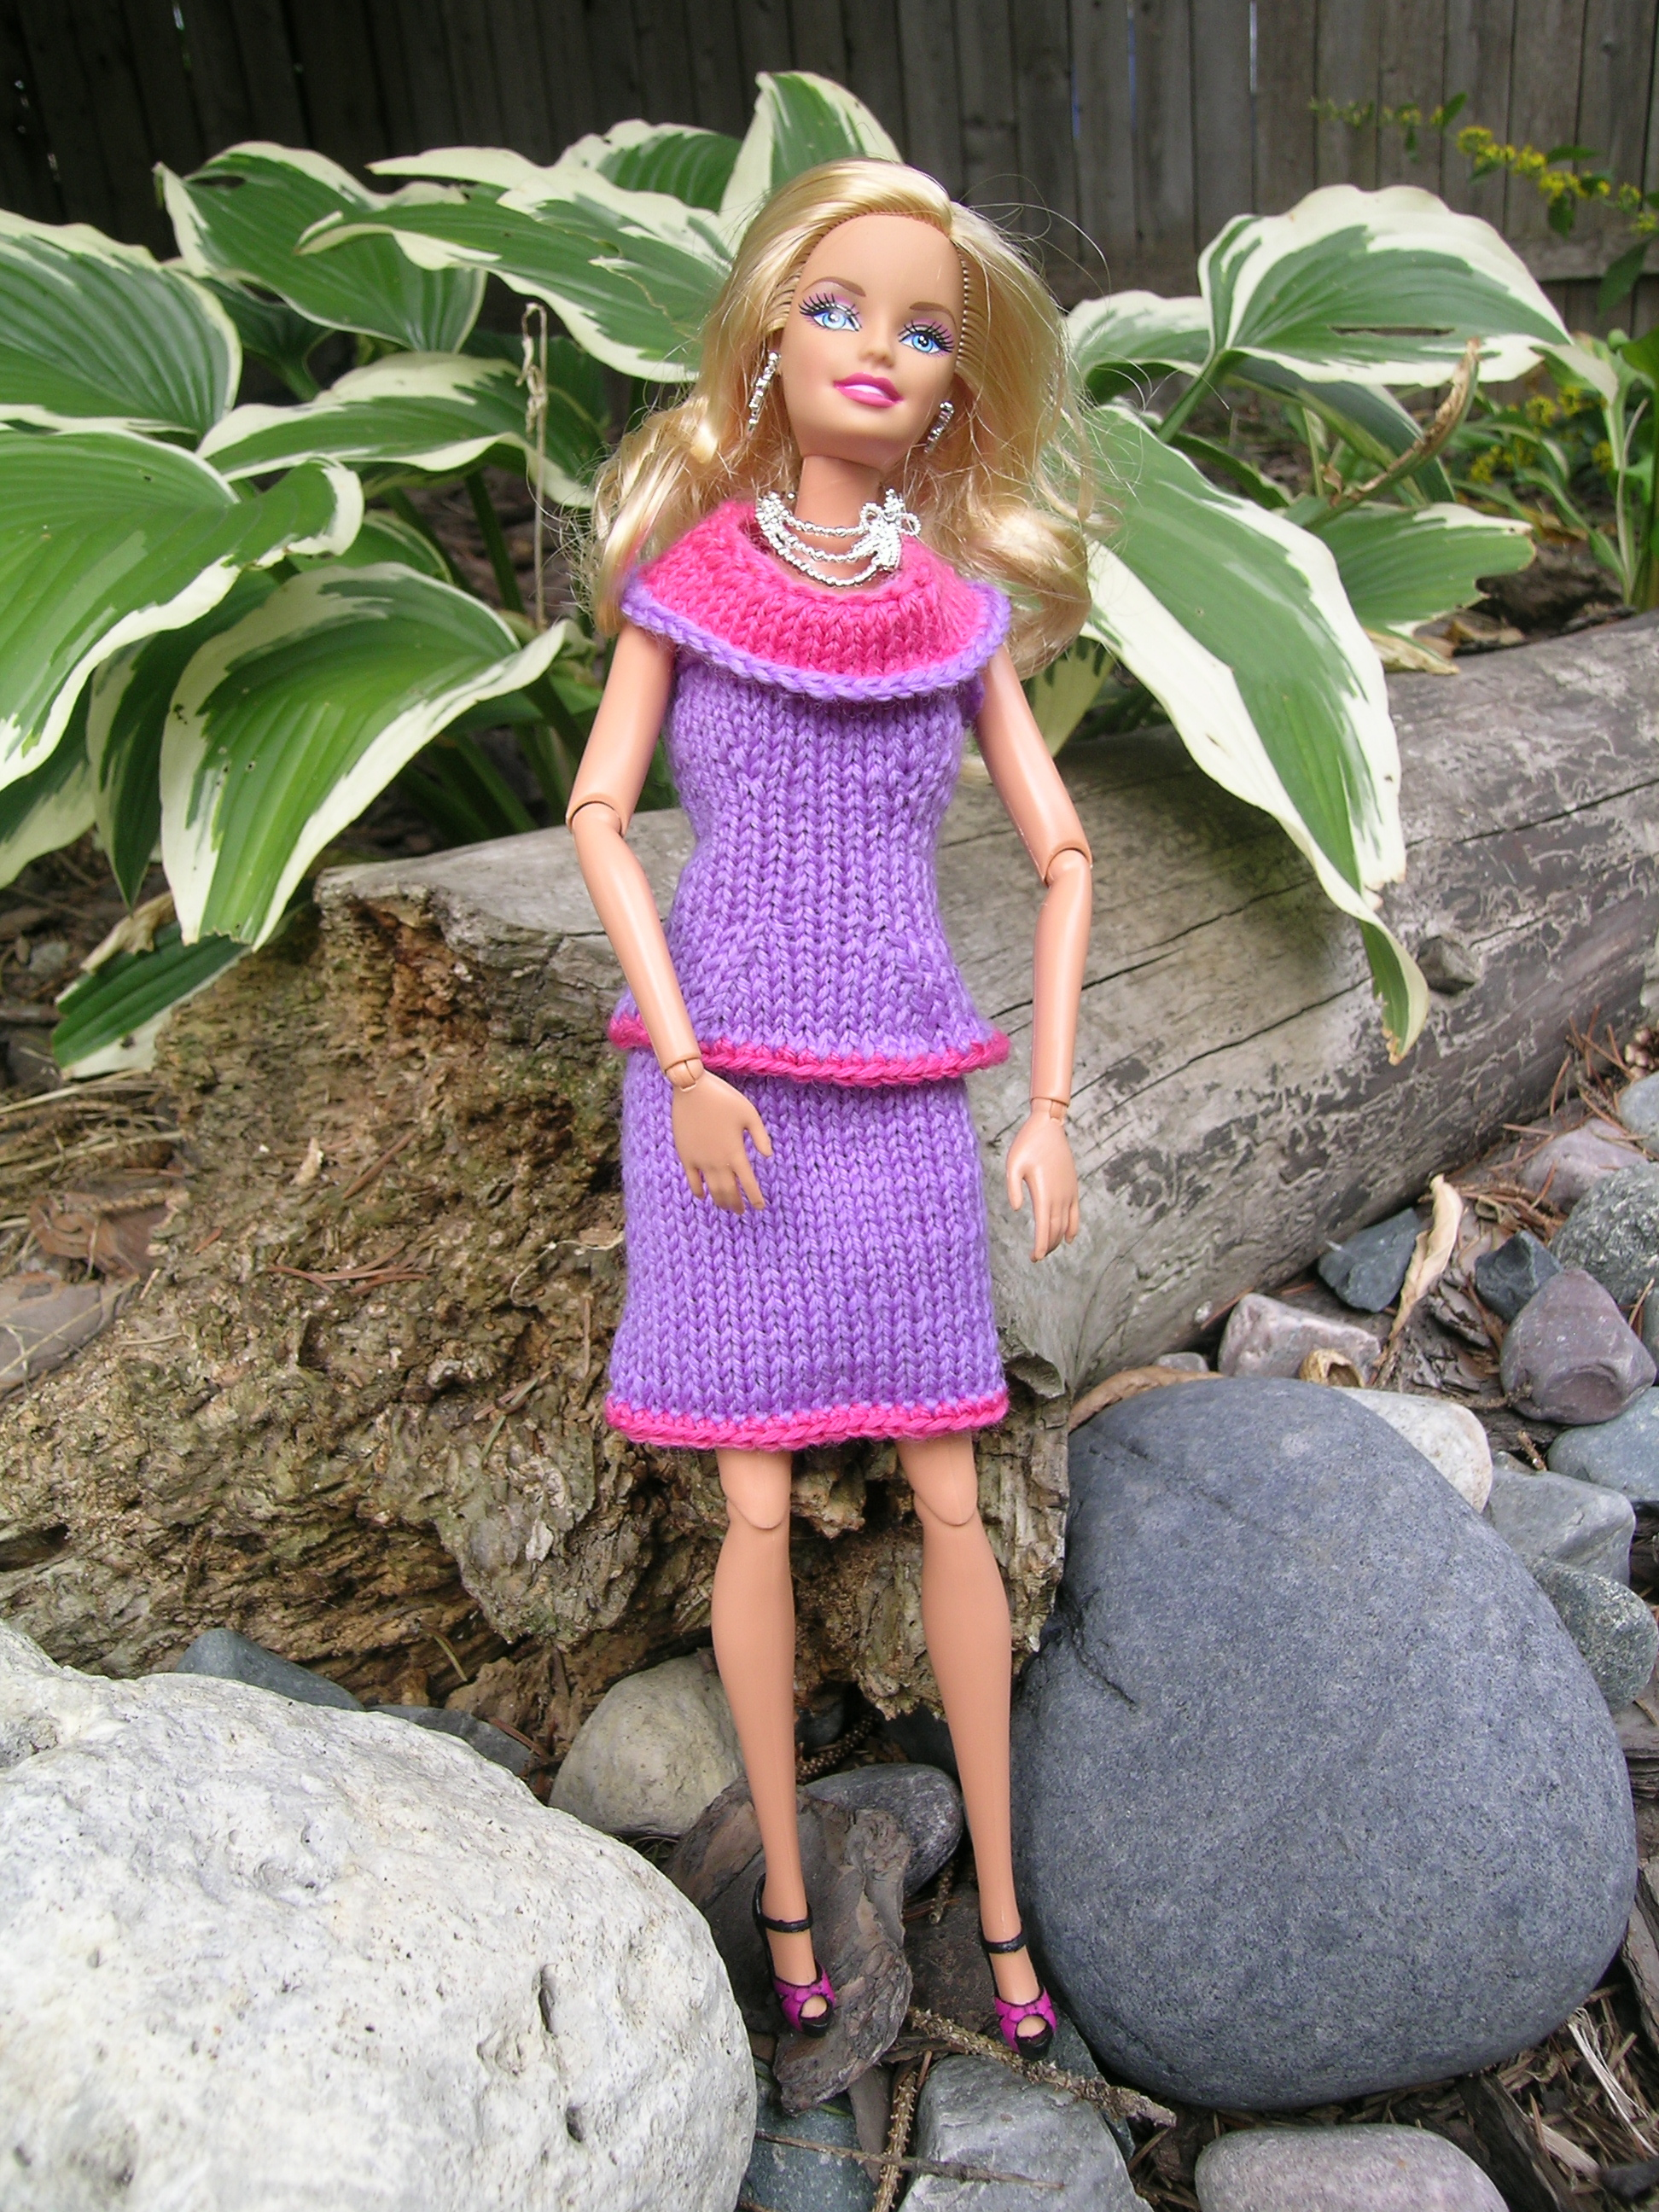 Knitting Patterns For Barbie Clothes : Barbie Doll clothes Knitting before Knitting was Cool